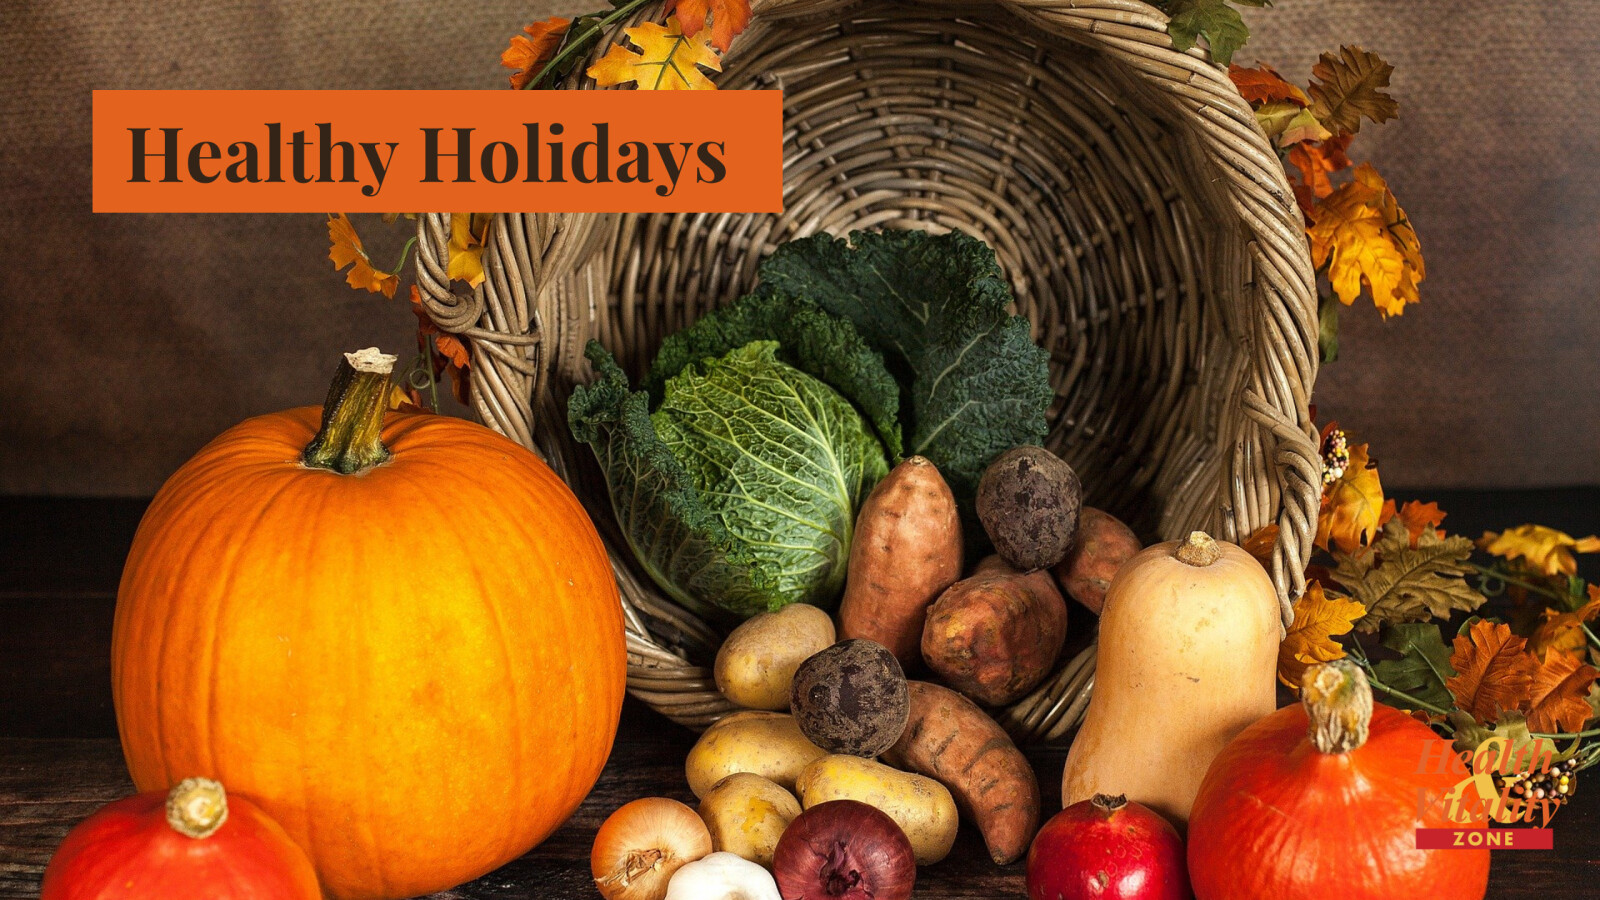 Make Healthy Choices This Holiday Season